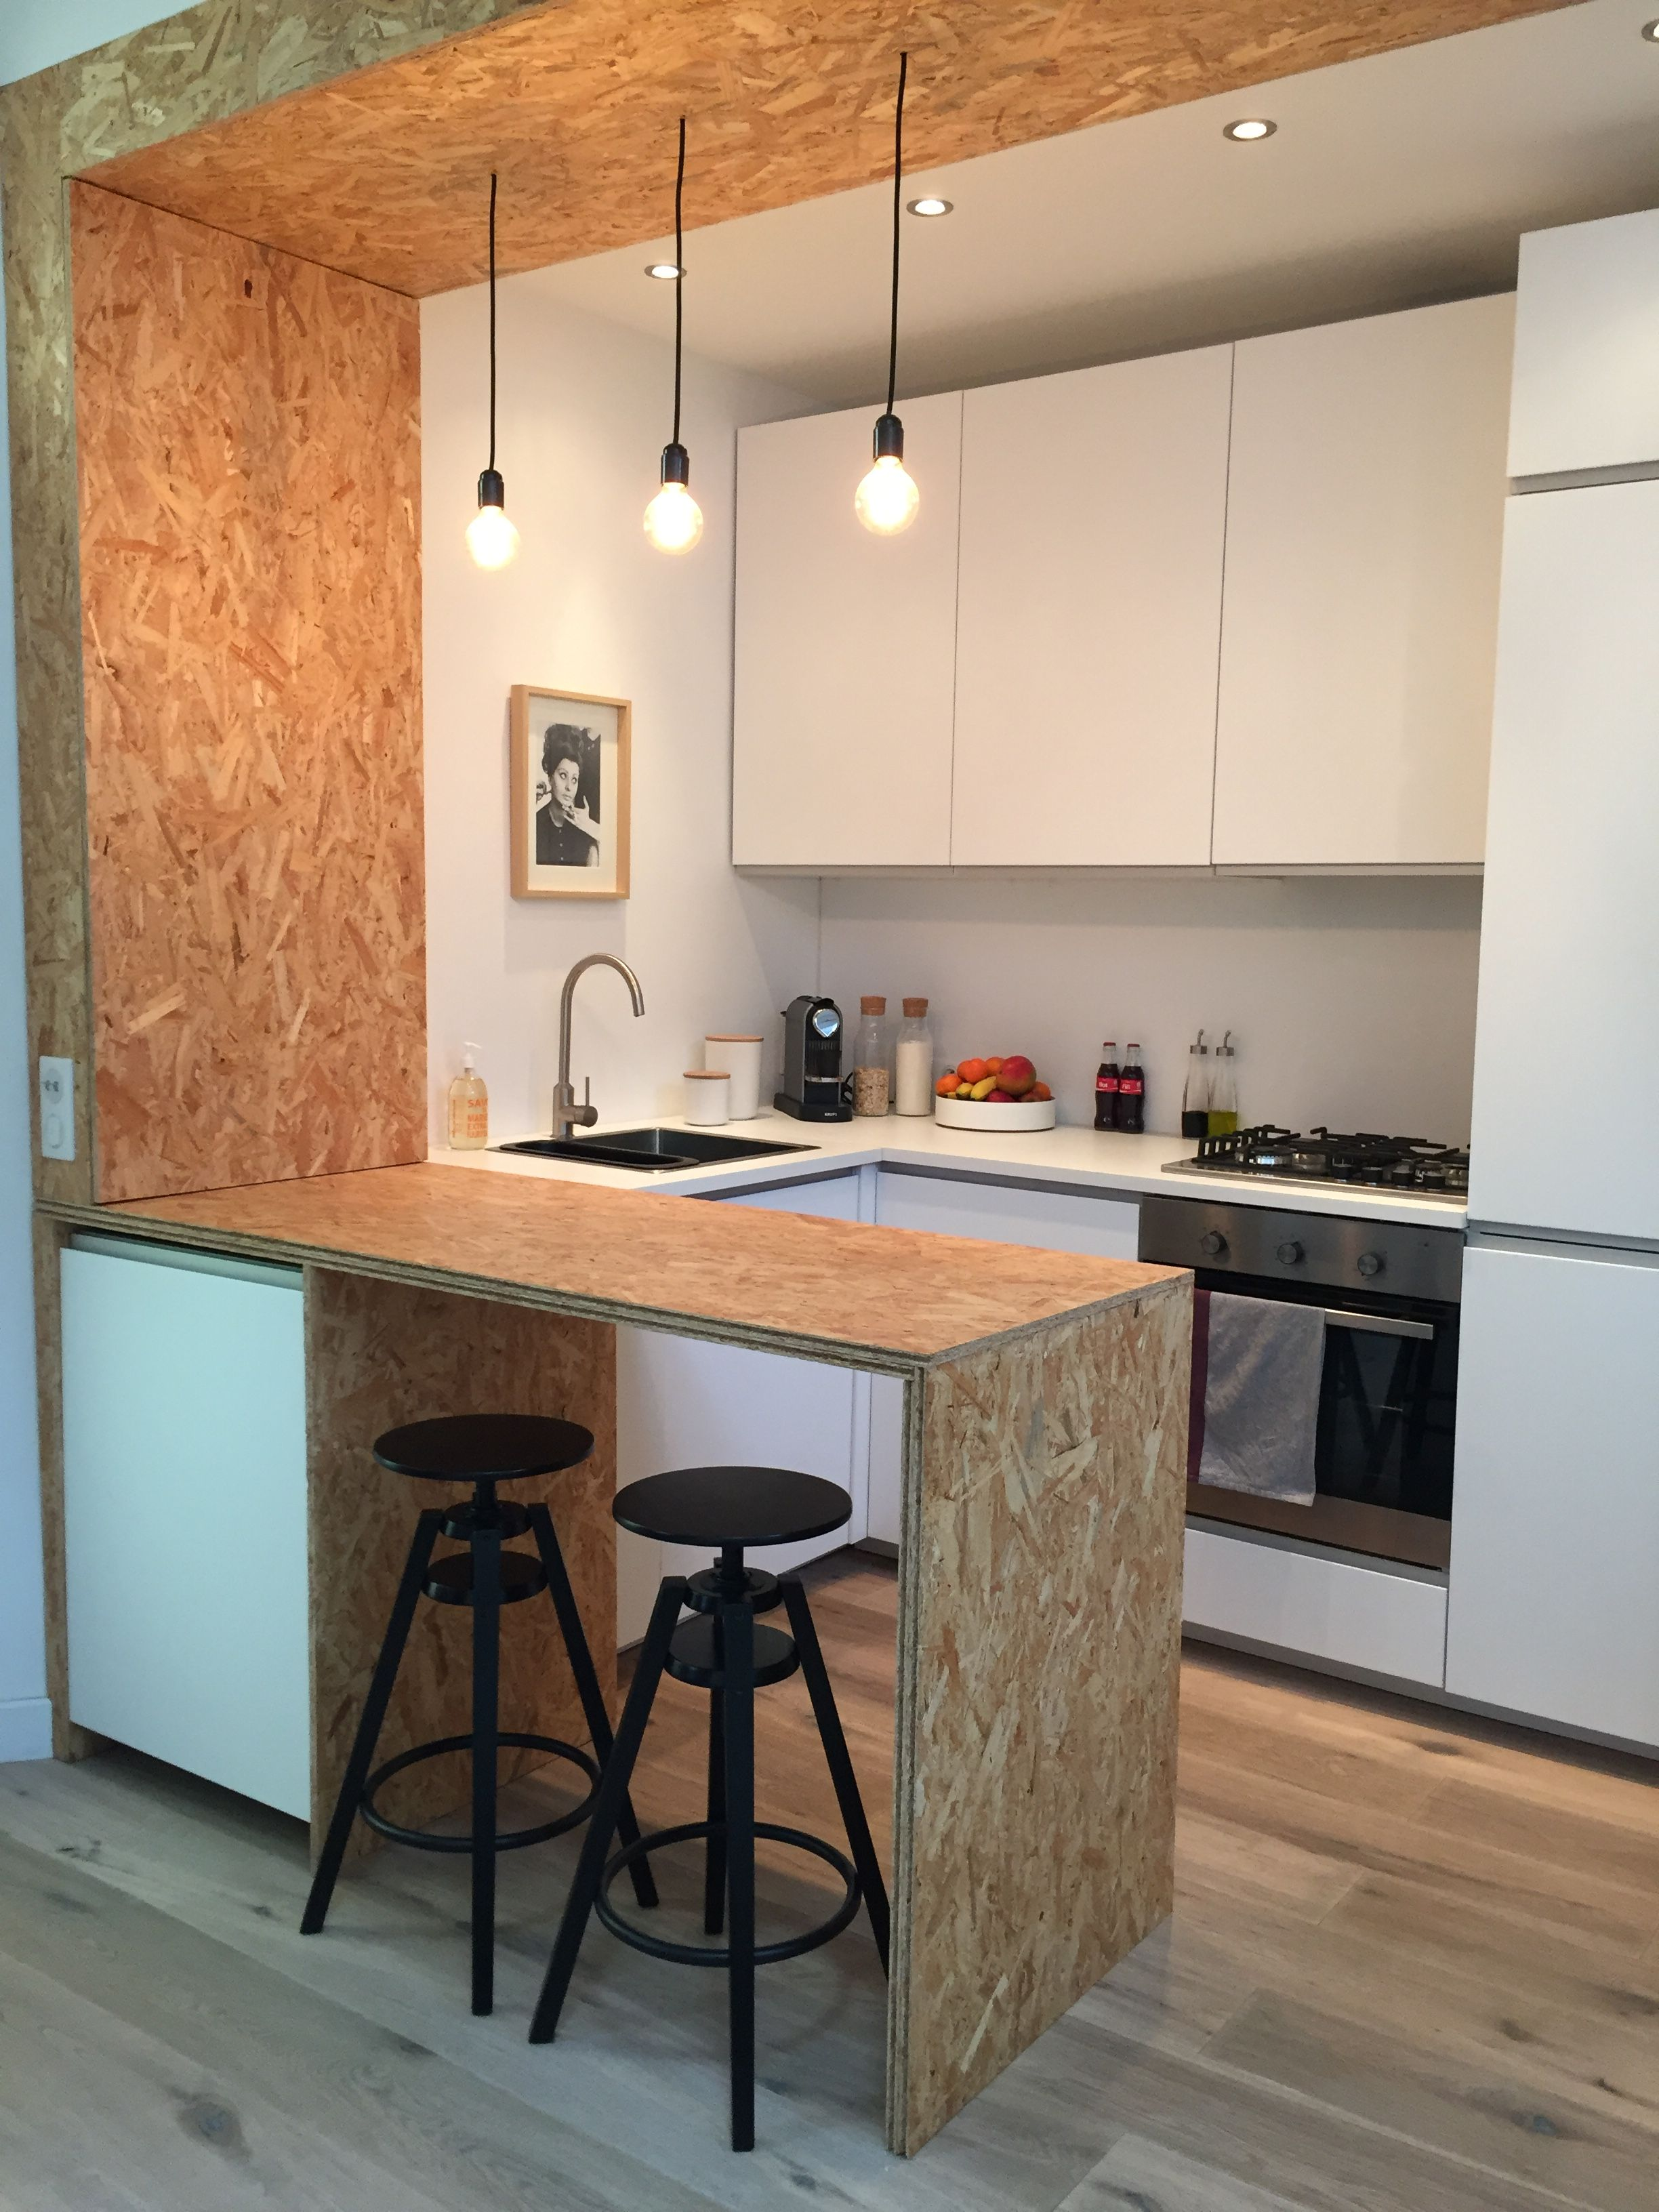 Idee Cuisine Ouverte Design Appartement Moderne De 35m2 Osb Smart Kitchen Small Design